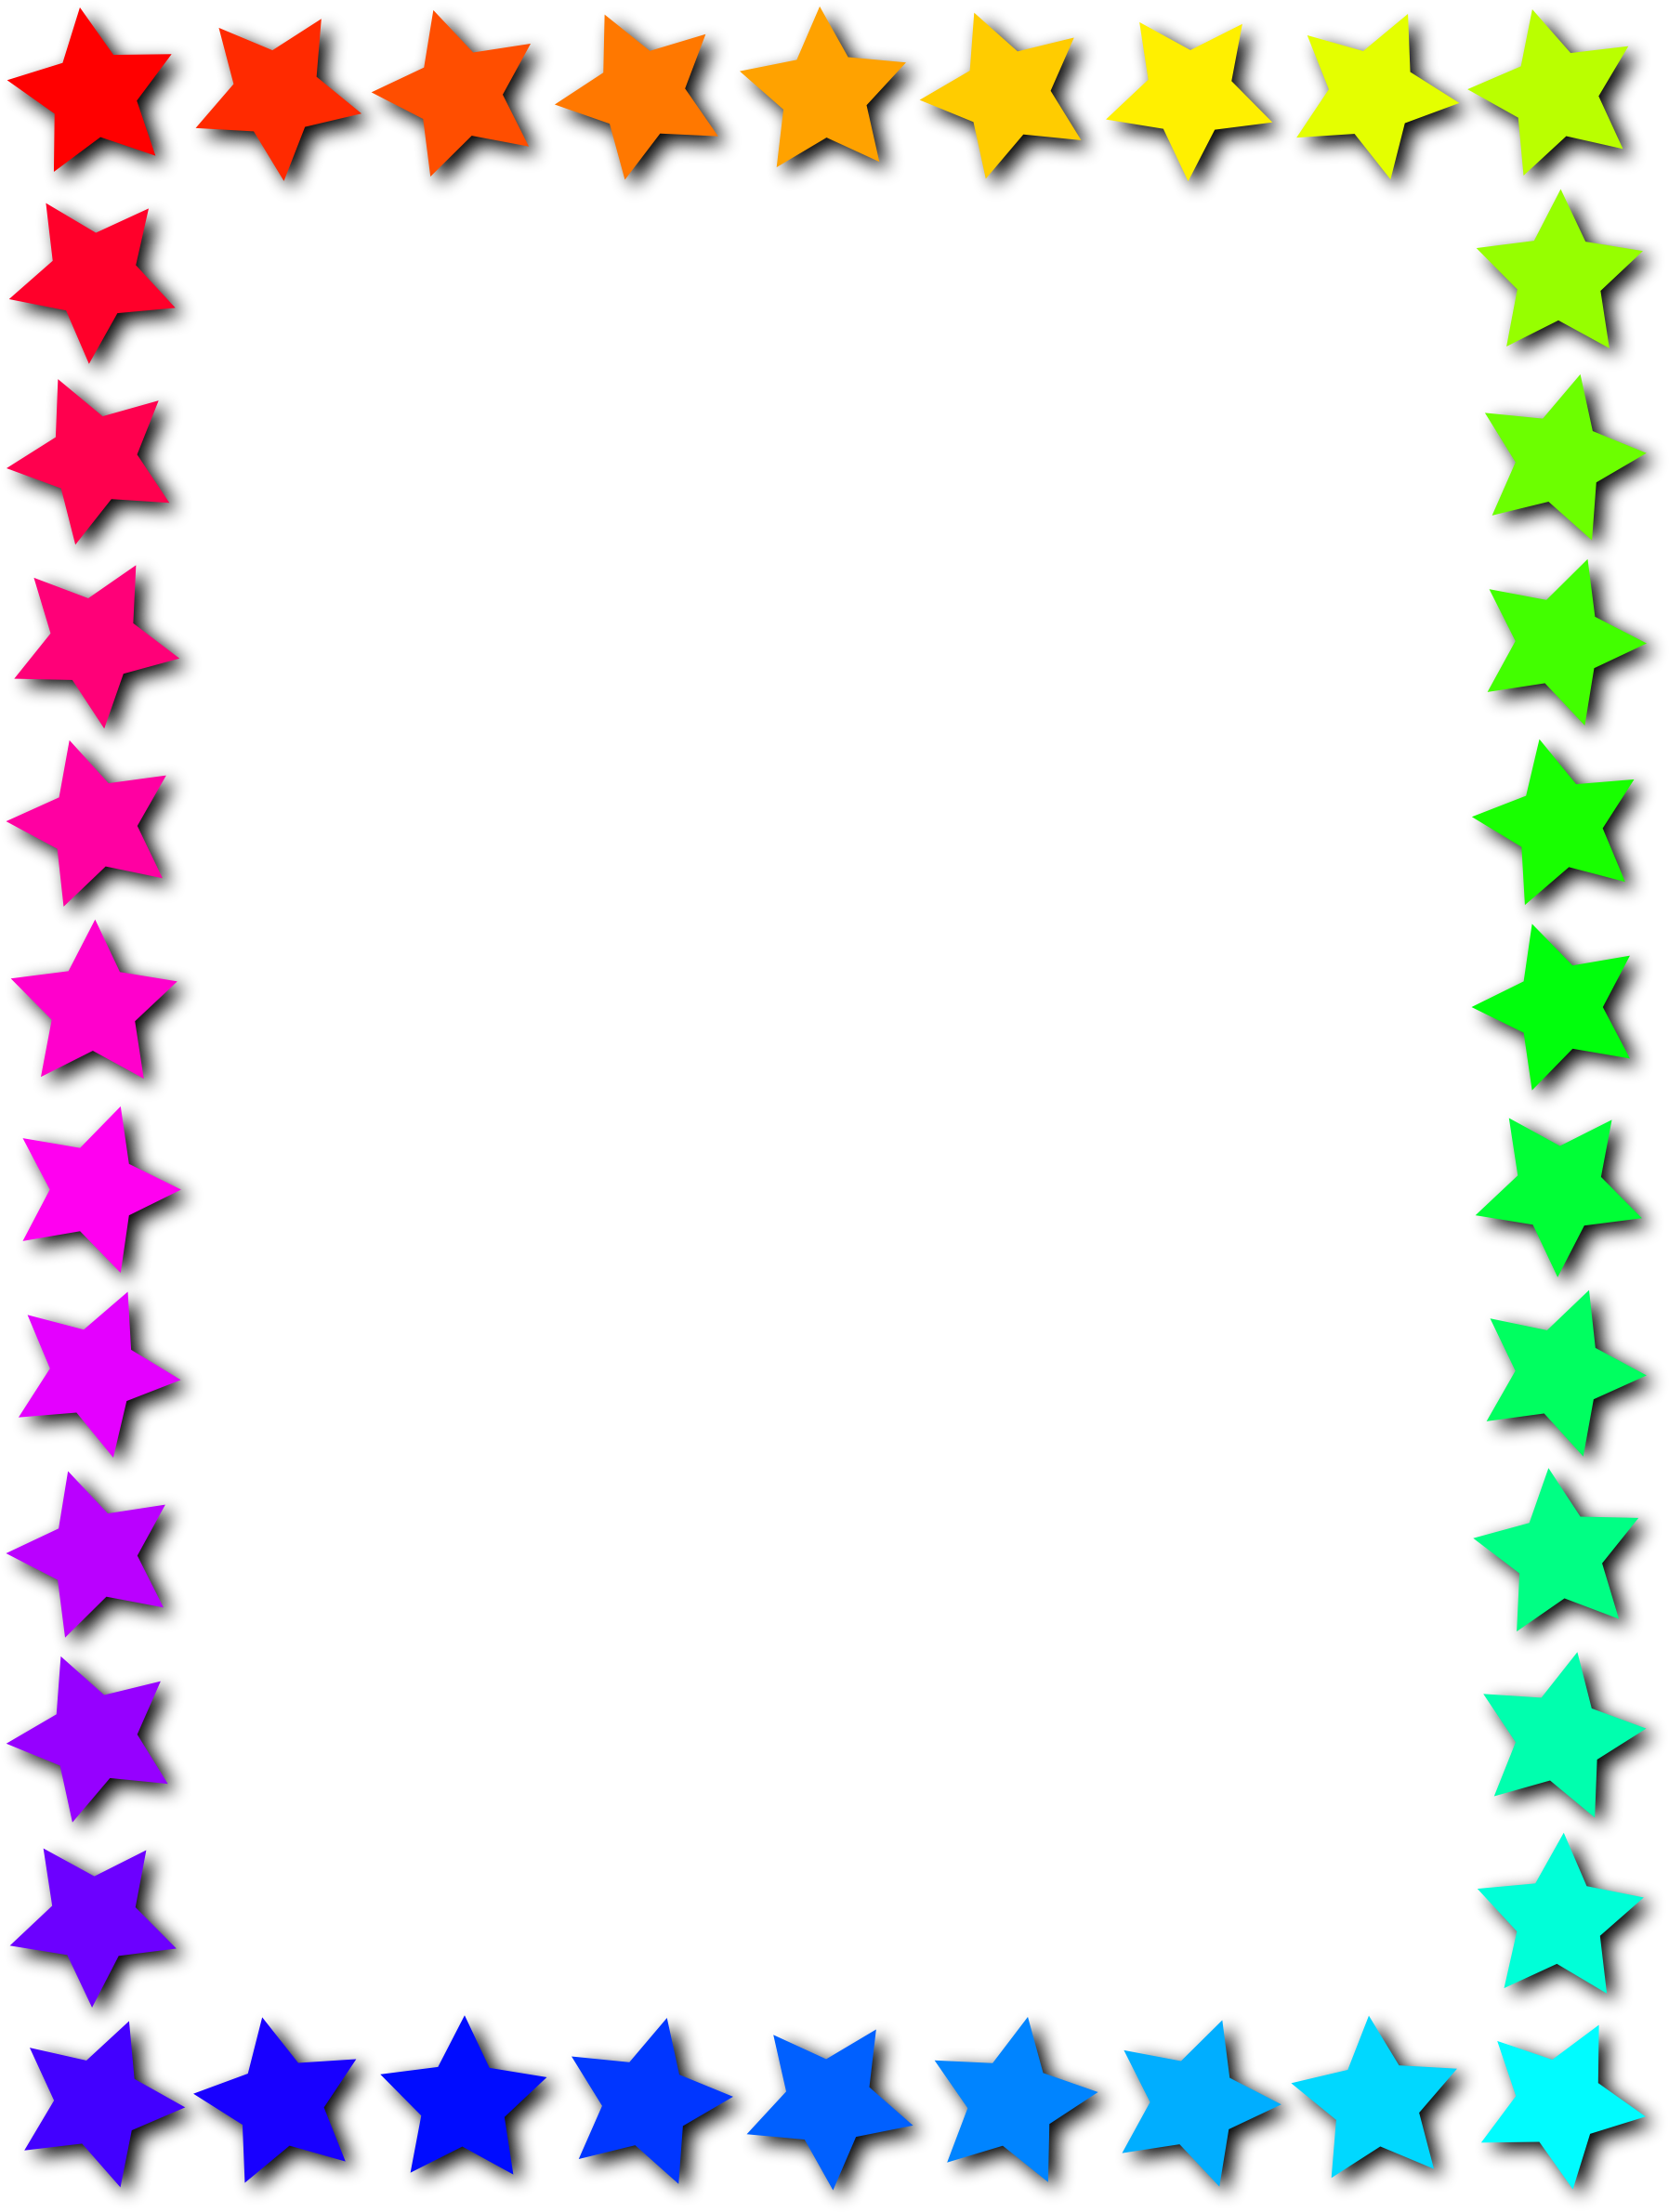 banner royalty free download Stars clipart border. Star frame starframe clip.